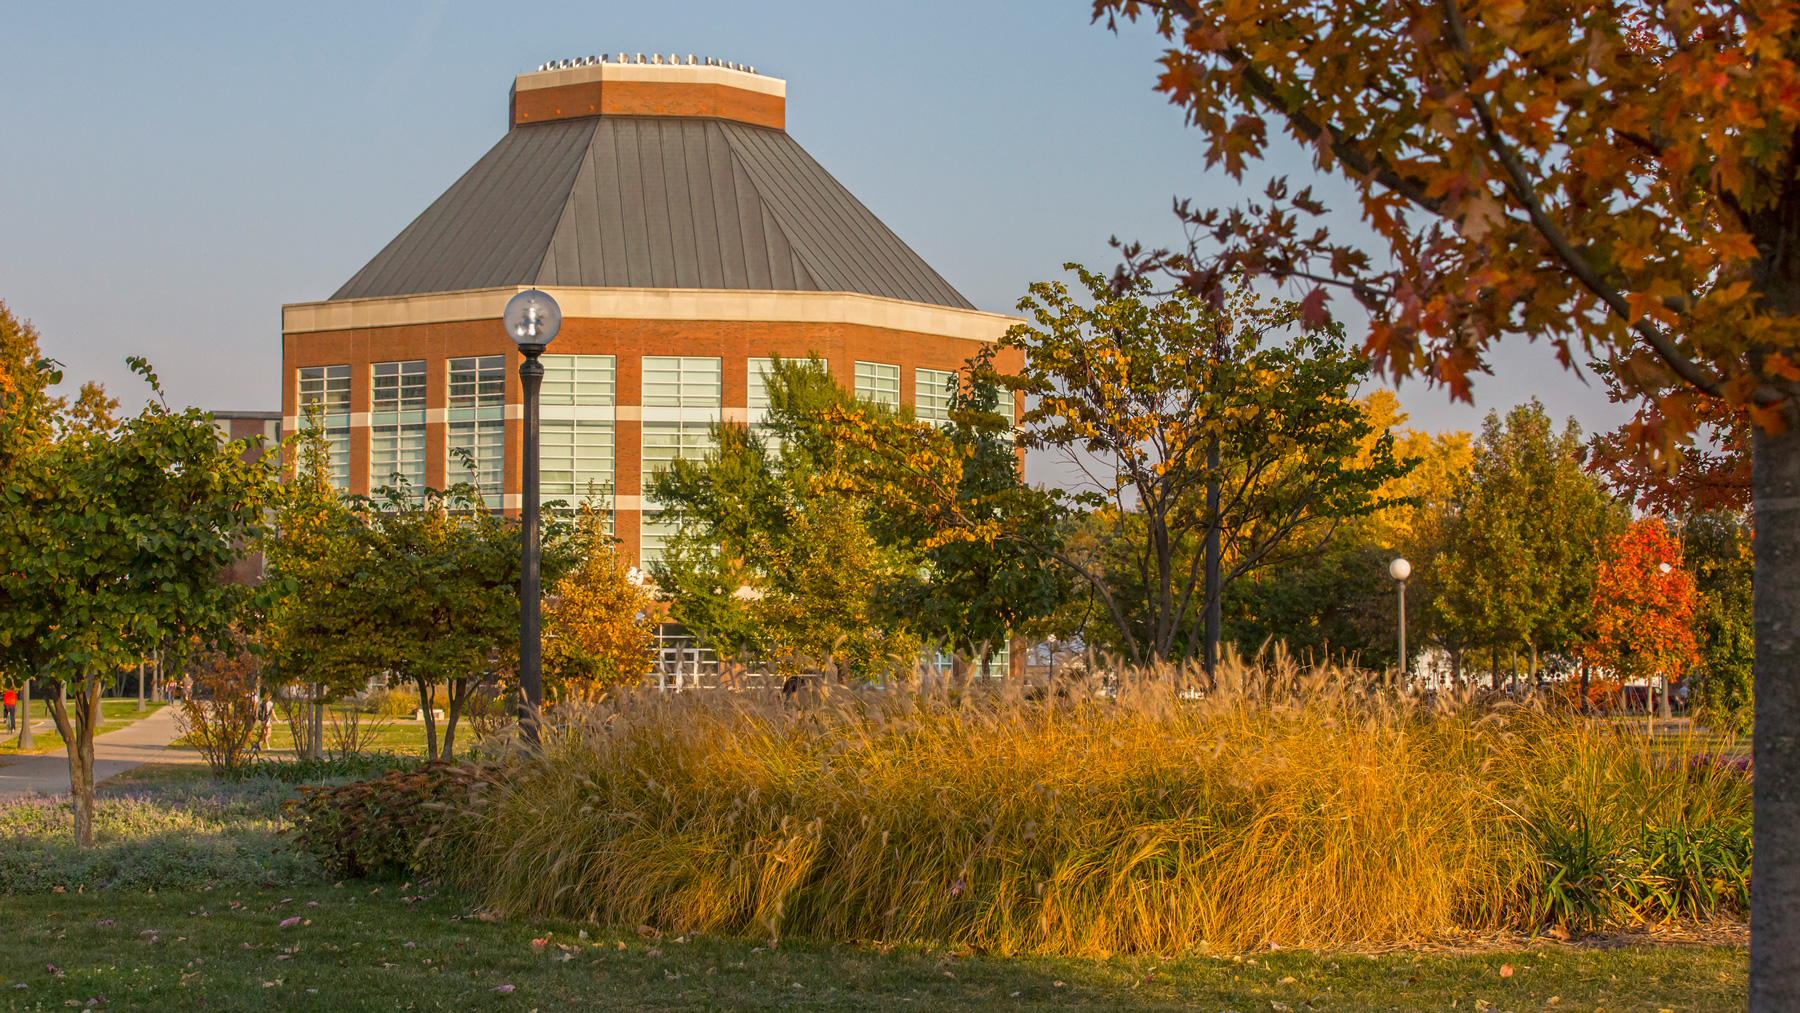 ACES Librarry in Fall. Photo by L. Brian Stauffer